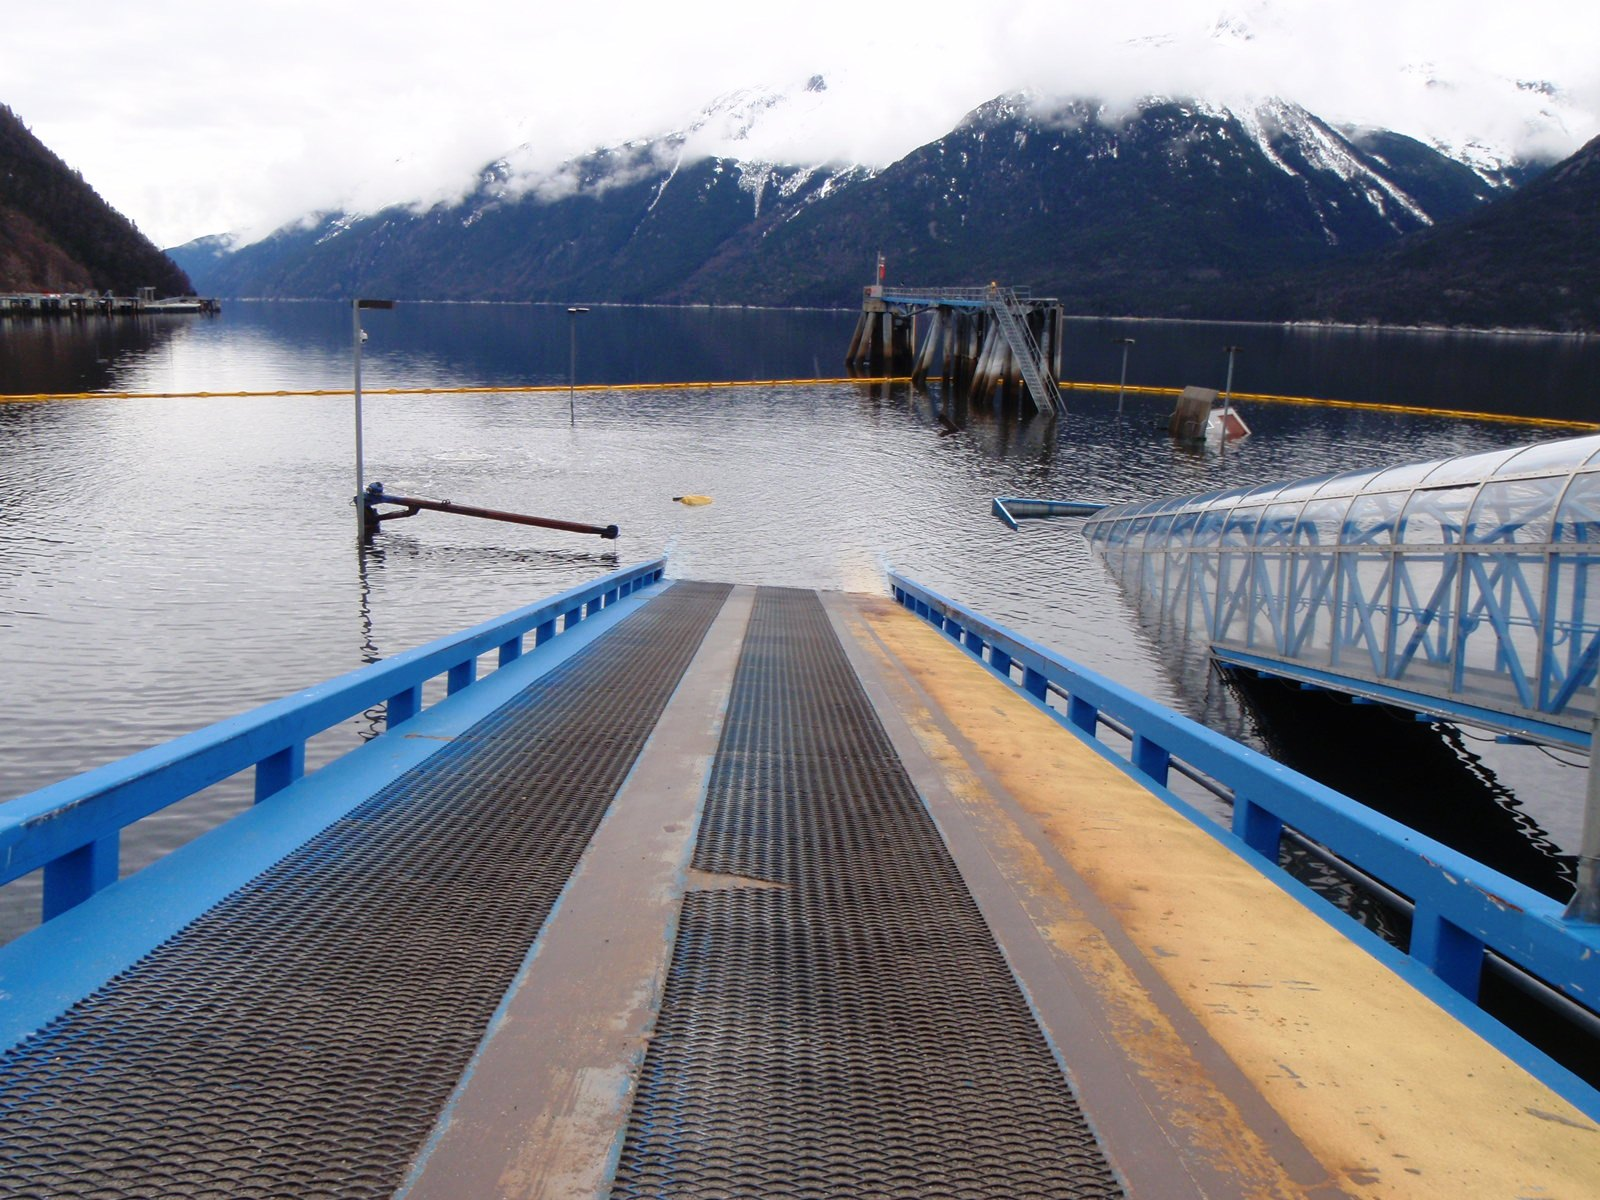 AMHS vehicle and pedestrian ramps in Skagway plunge into the water. (Photo courtesy Kirk Miller, Alaska DOT&PF)